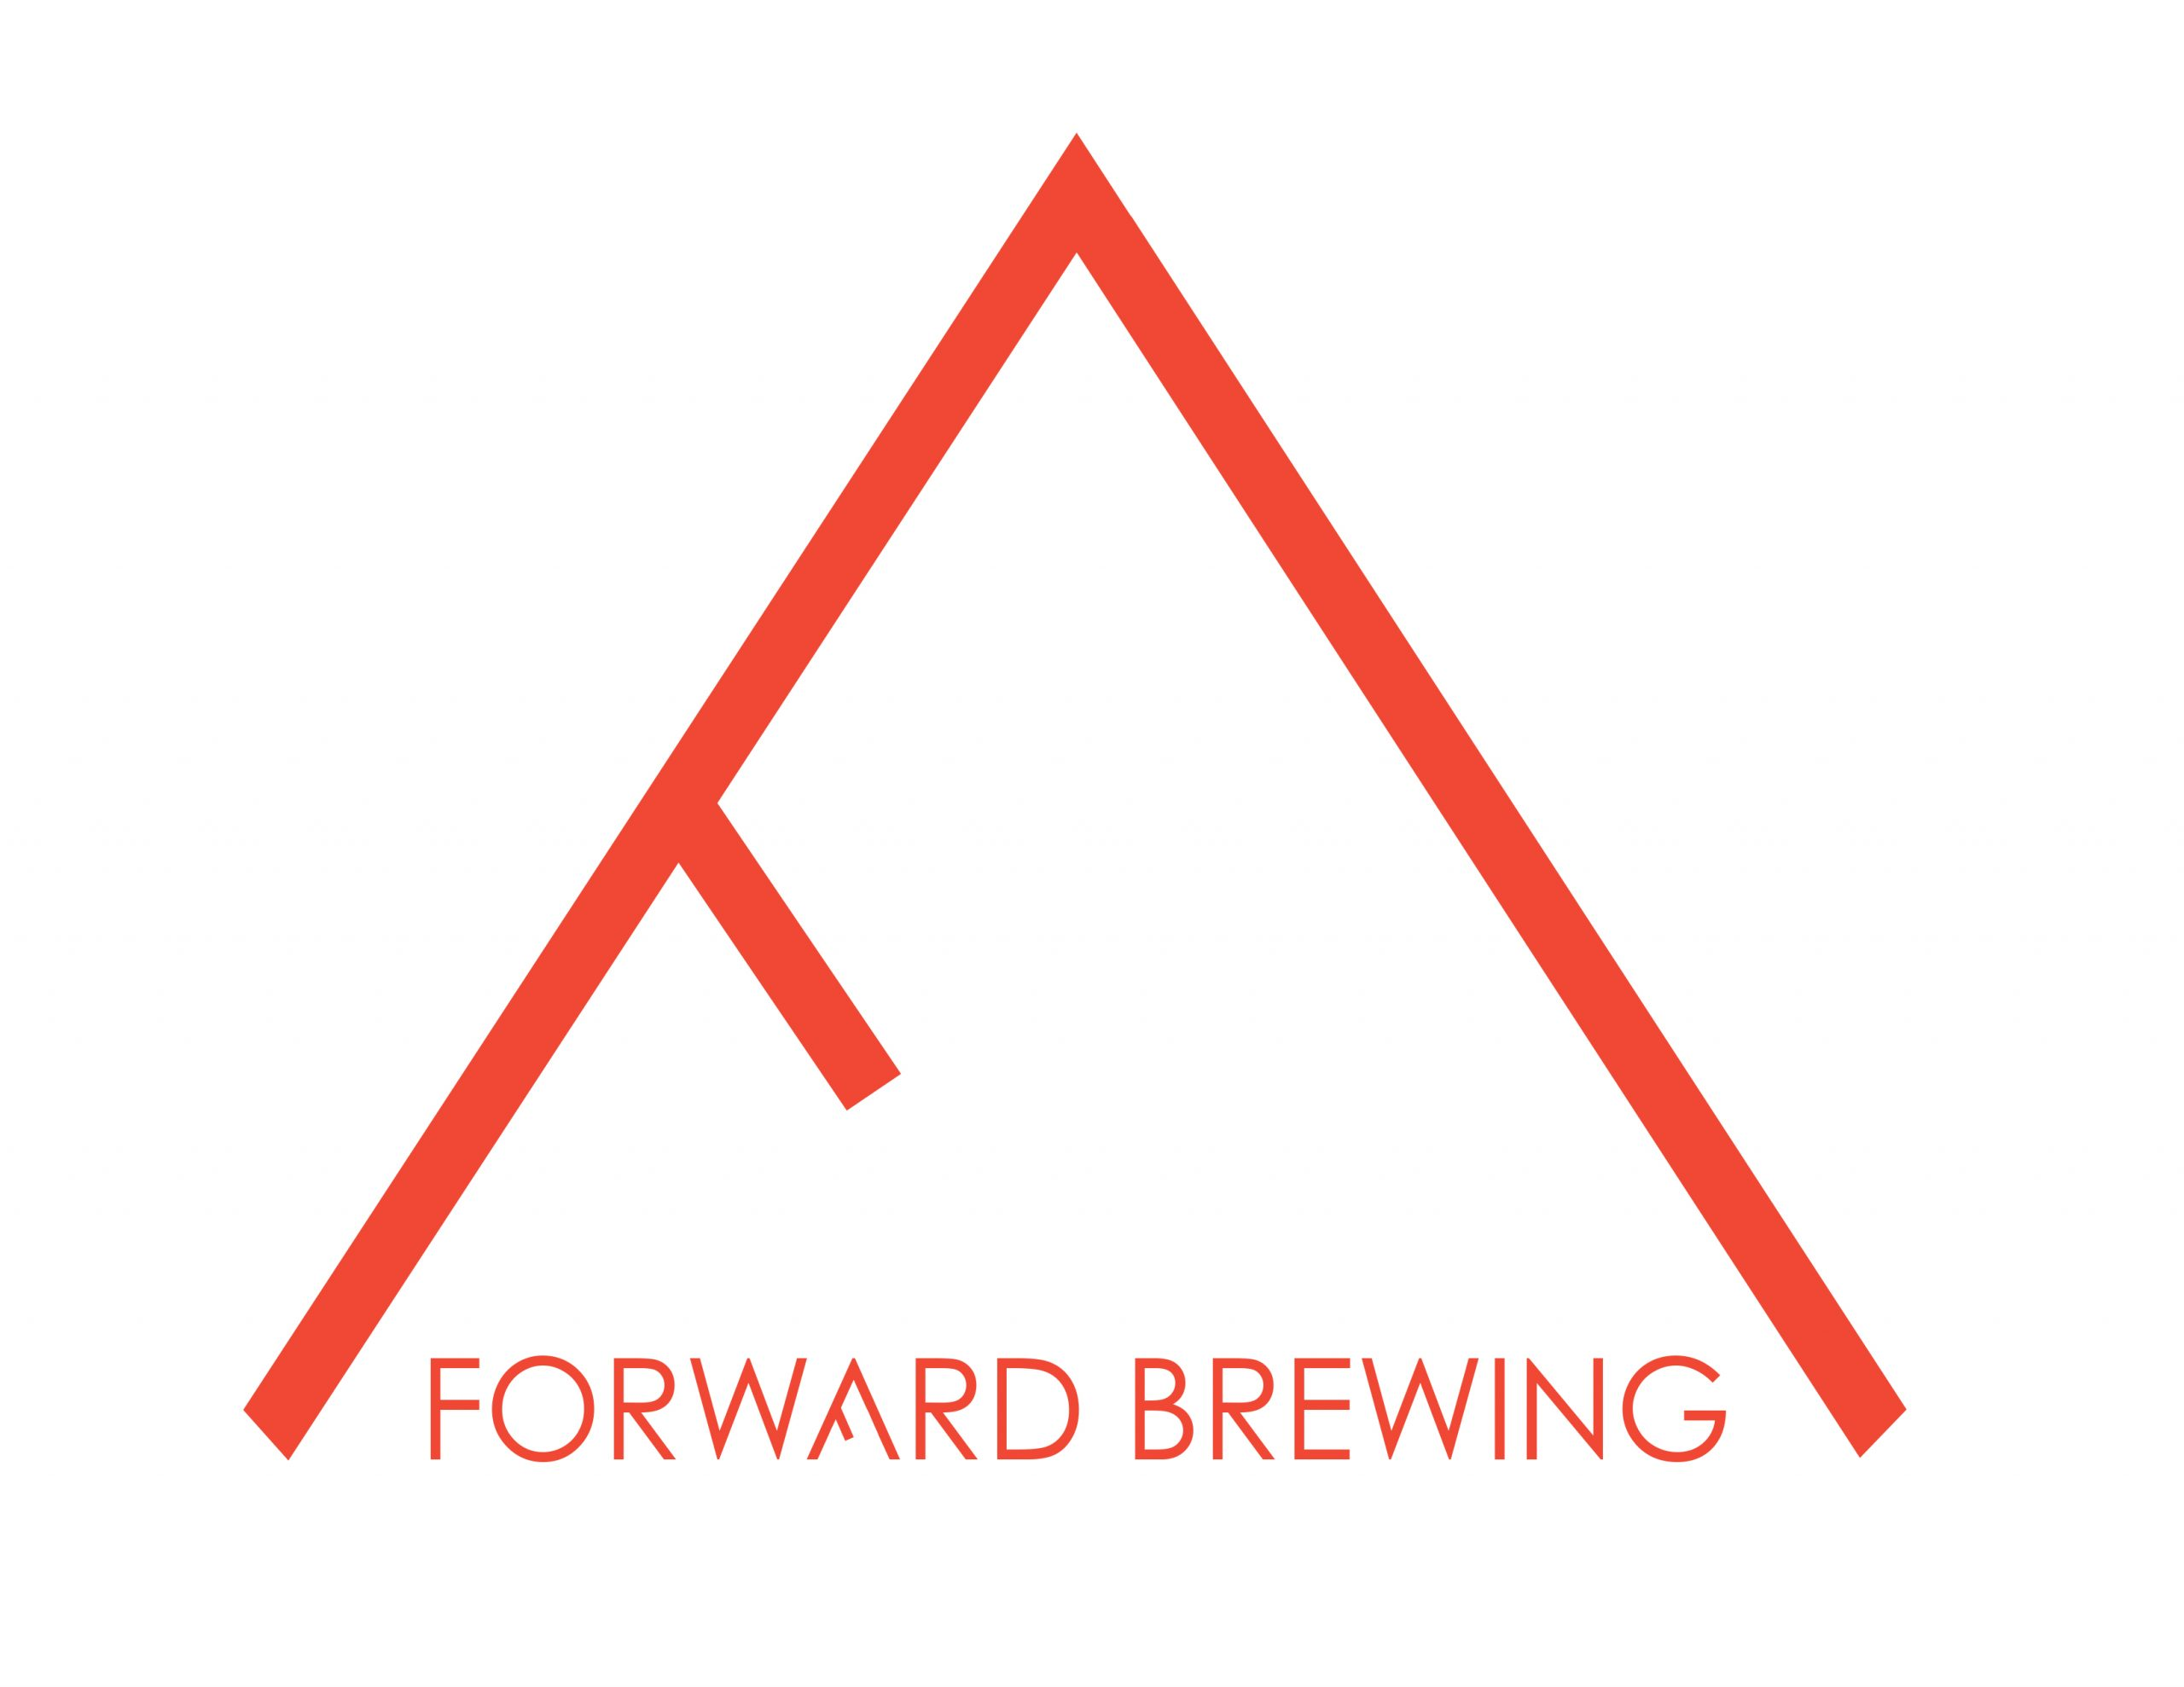 """Forward Brewing set to open in February, restoring local beer to Annapolis"" – The Baltimore Sun"